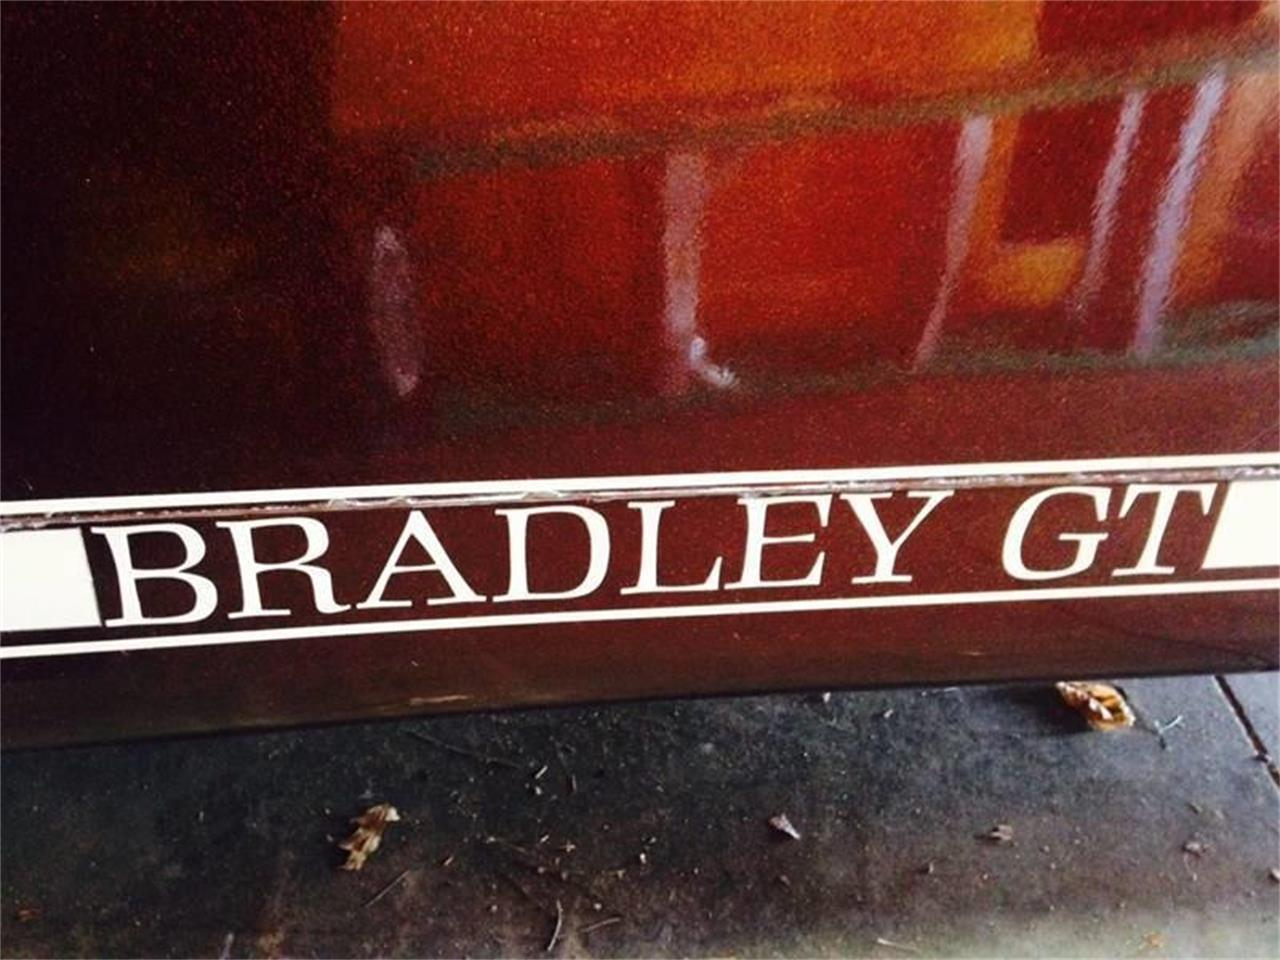 1980 Bradley Kit Car for sale in Shenandoah, IA – photo 8